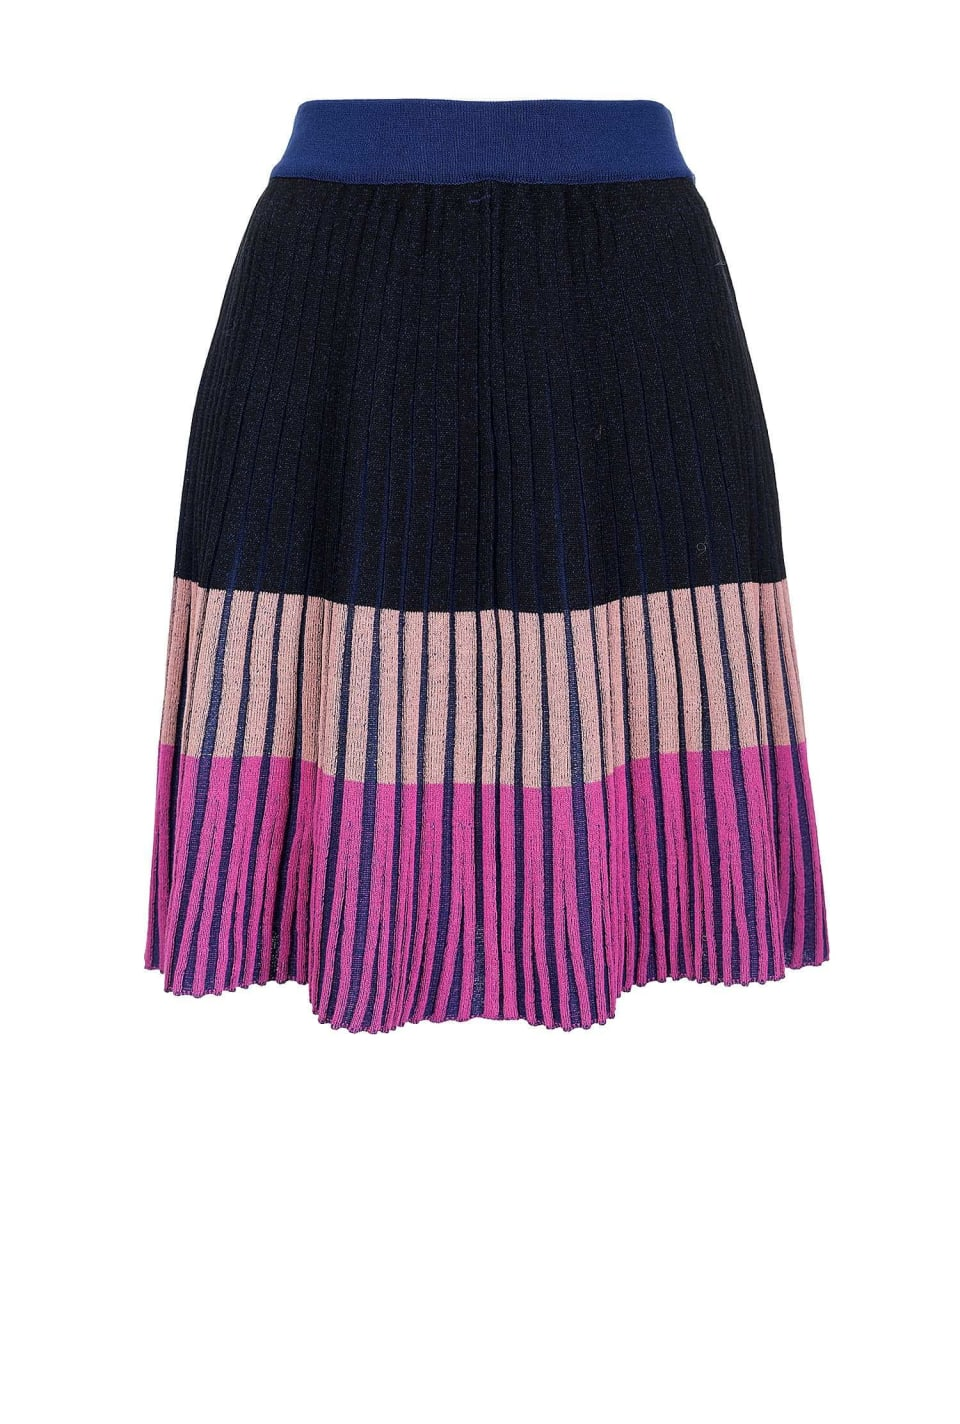 Skirt in colour block knit